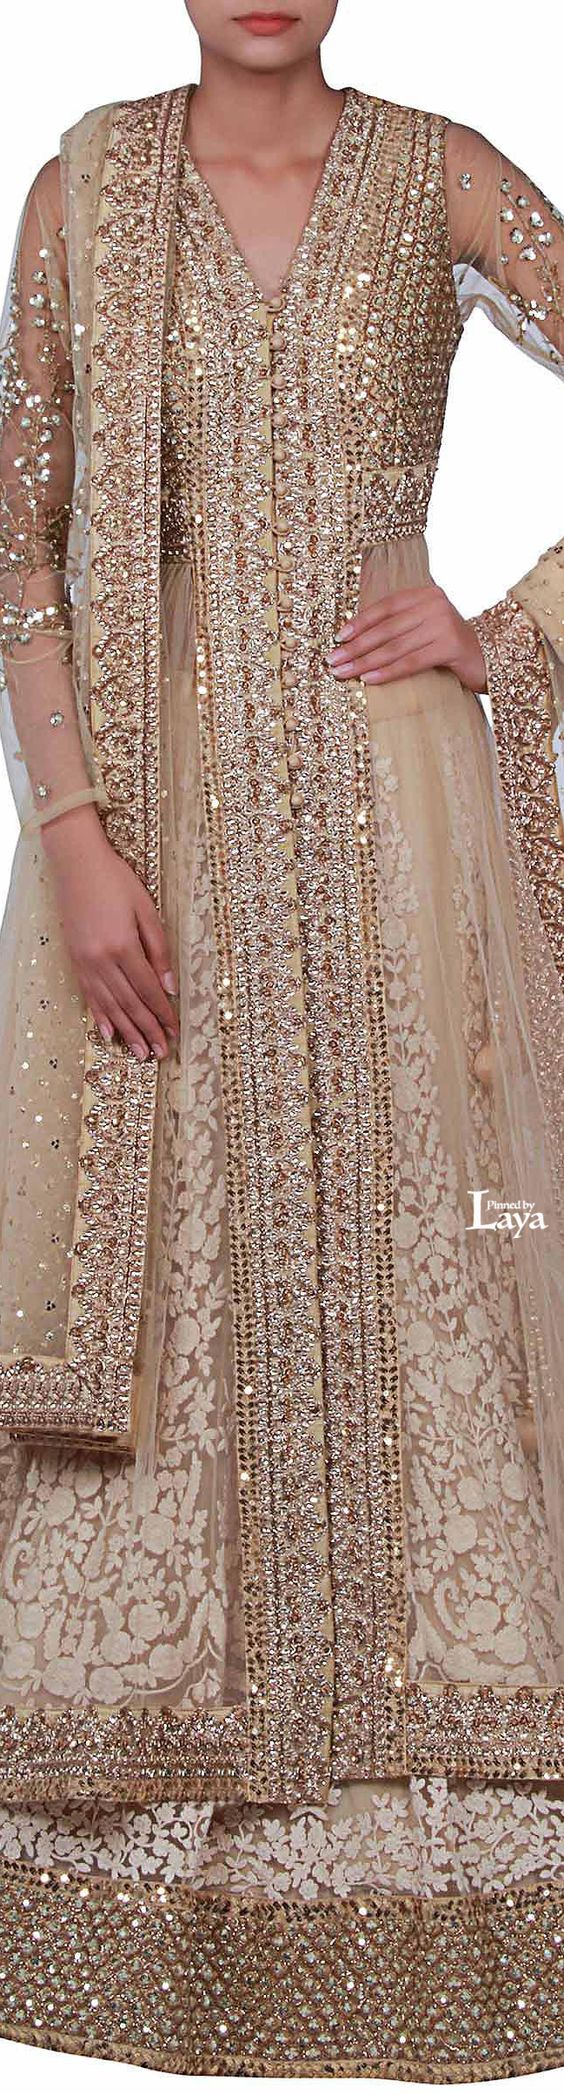 Party Wear & Wedding Wear Frocks Collection For Girls 2016-2017 (4)